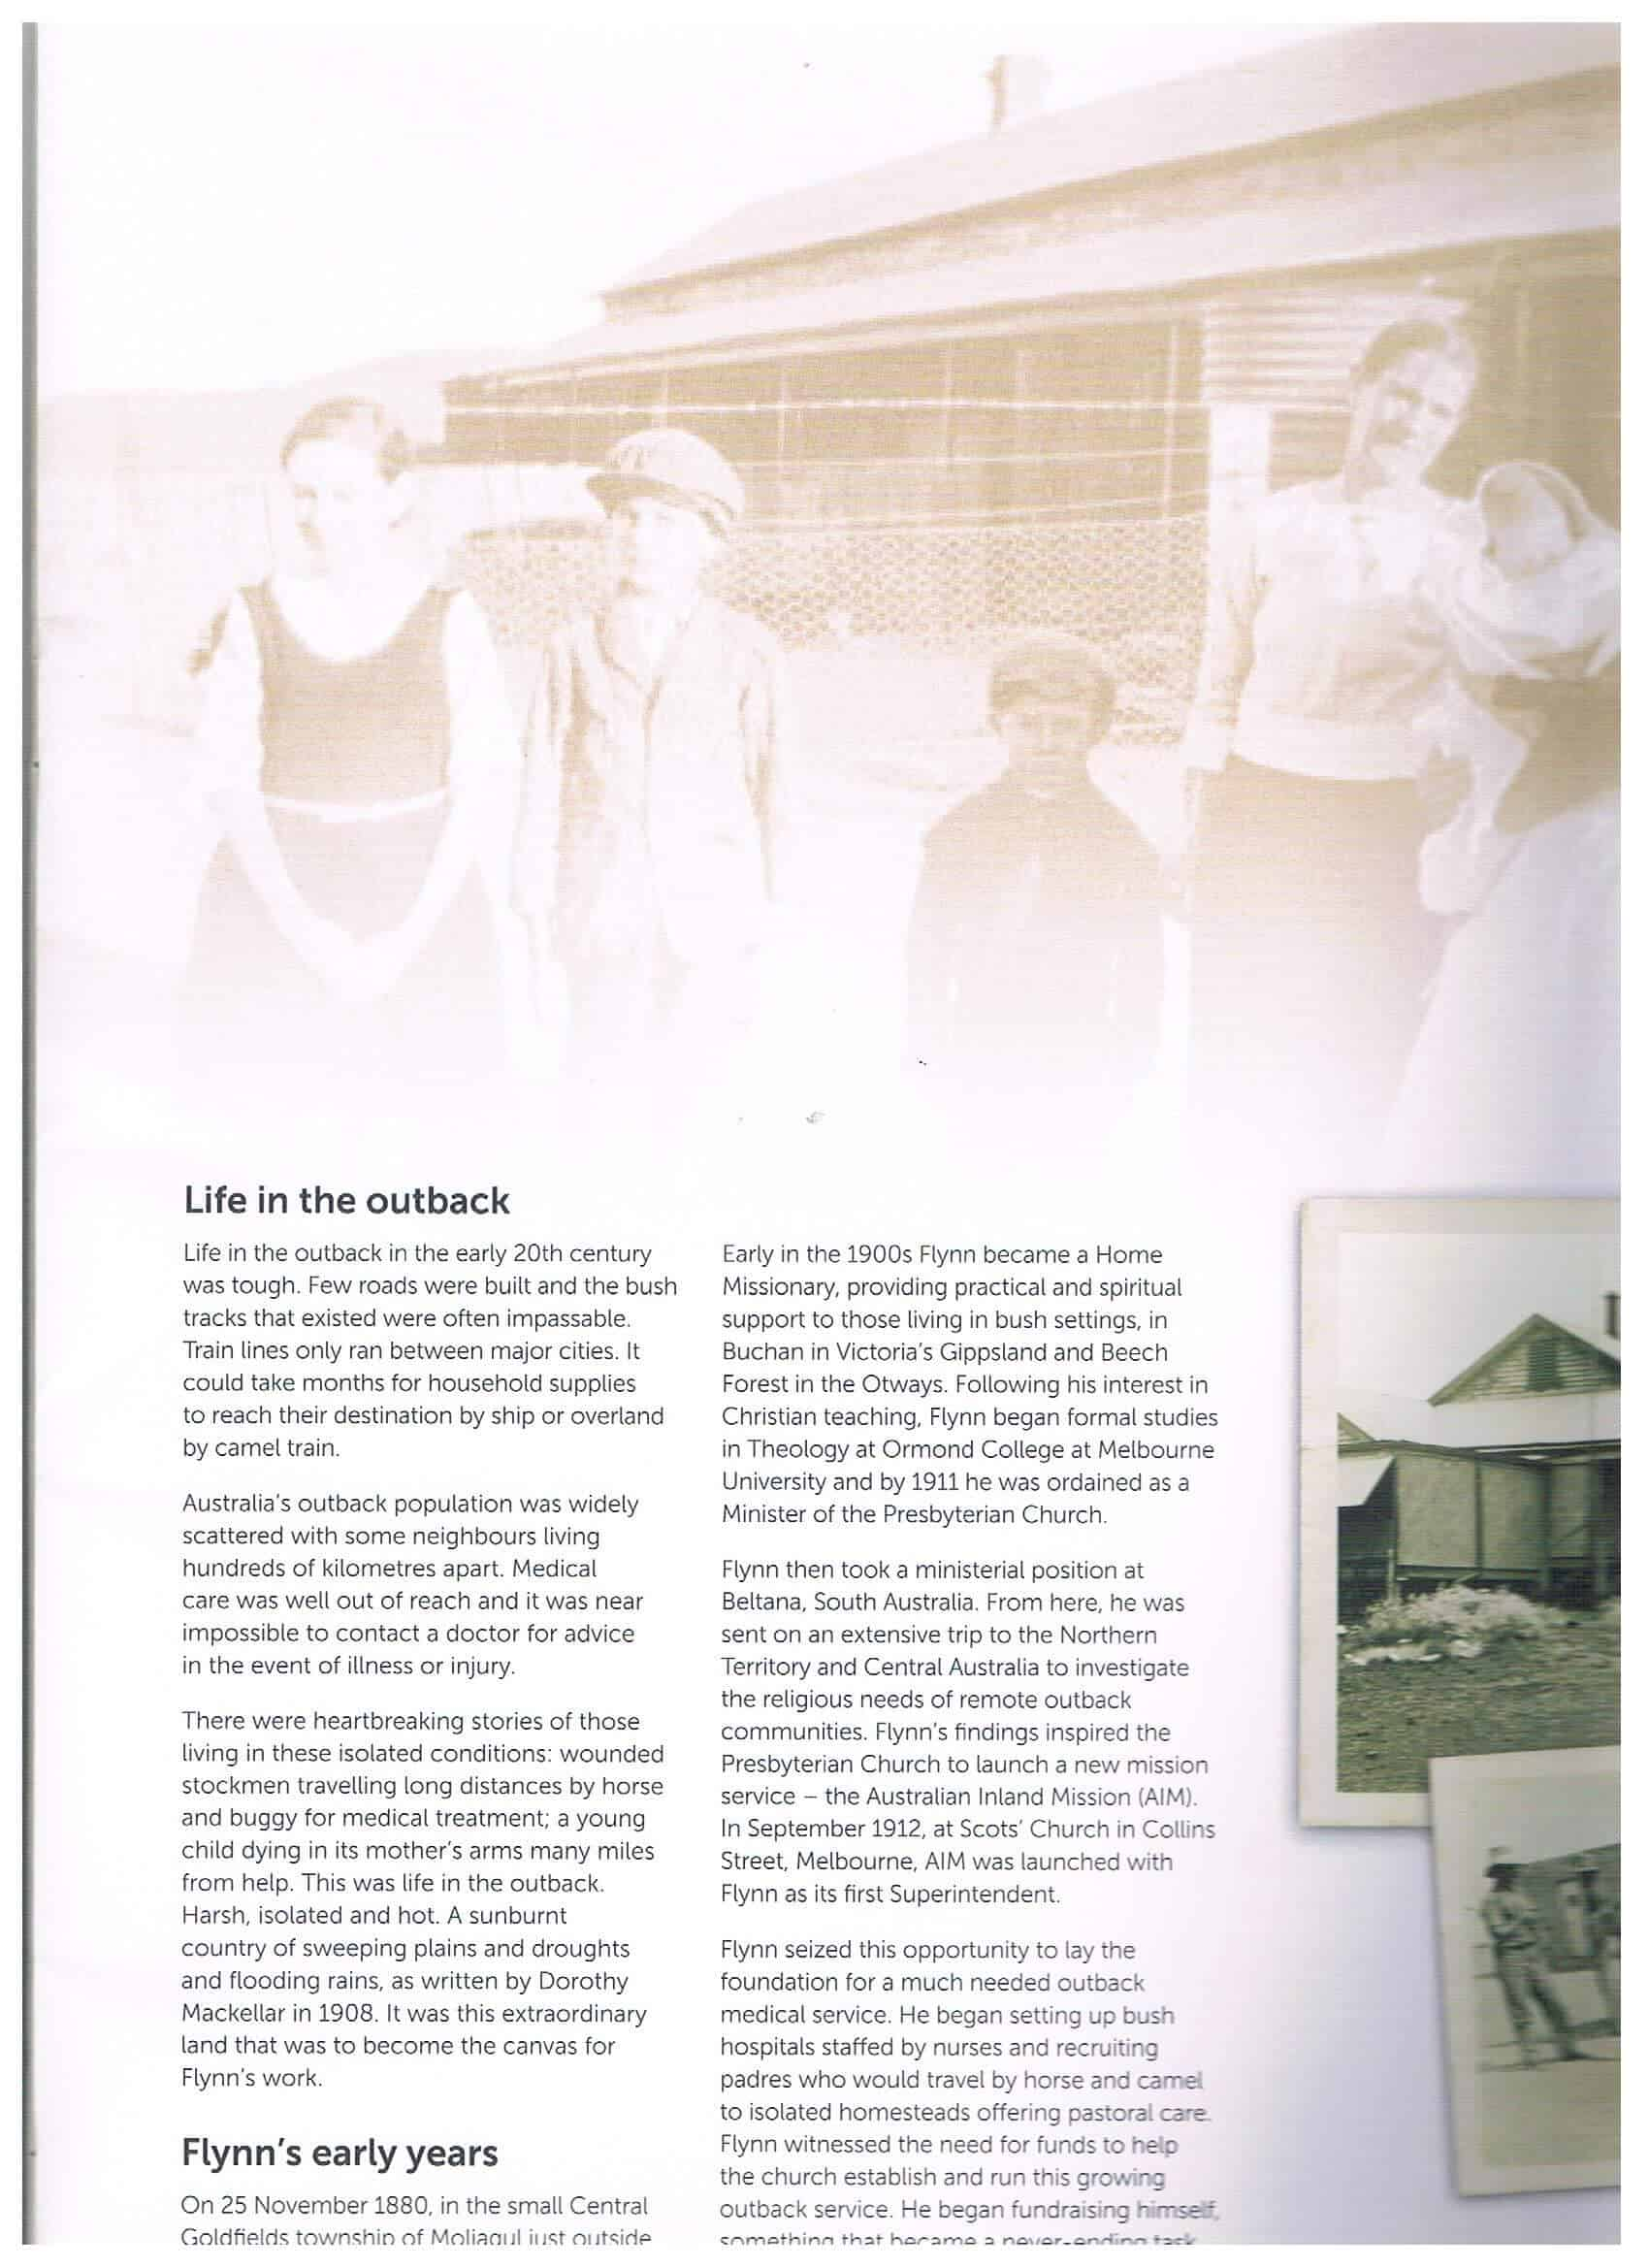 Royal Flying Doctor Service Our Victorian Story page 1 Life in the Outback